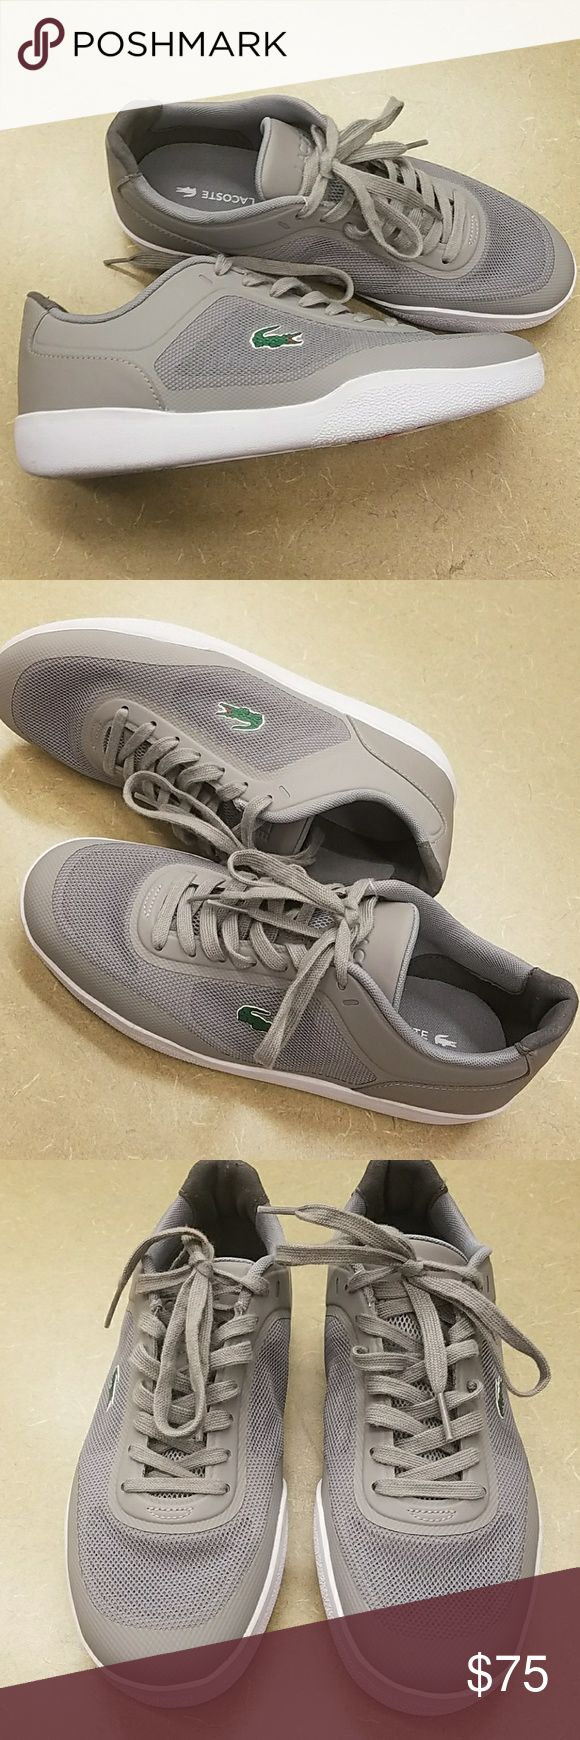 BOGO 50% OFF! LACOSTE TRAMLINE SNEAKERS NWT. CAN BE UNISEX -  MENS SIZE 7 / WOMANS SIZE  9 . NO BOX Lacoste Shoes